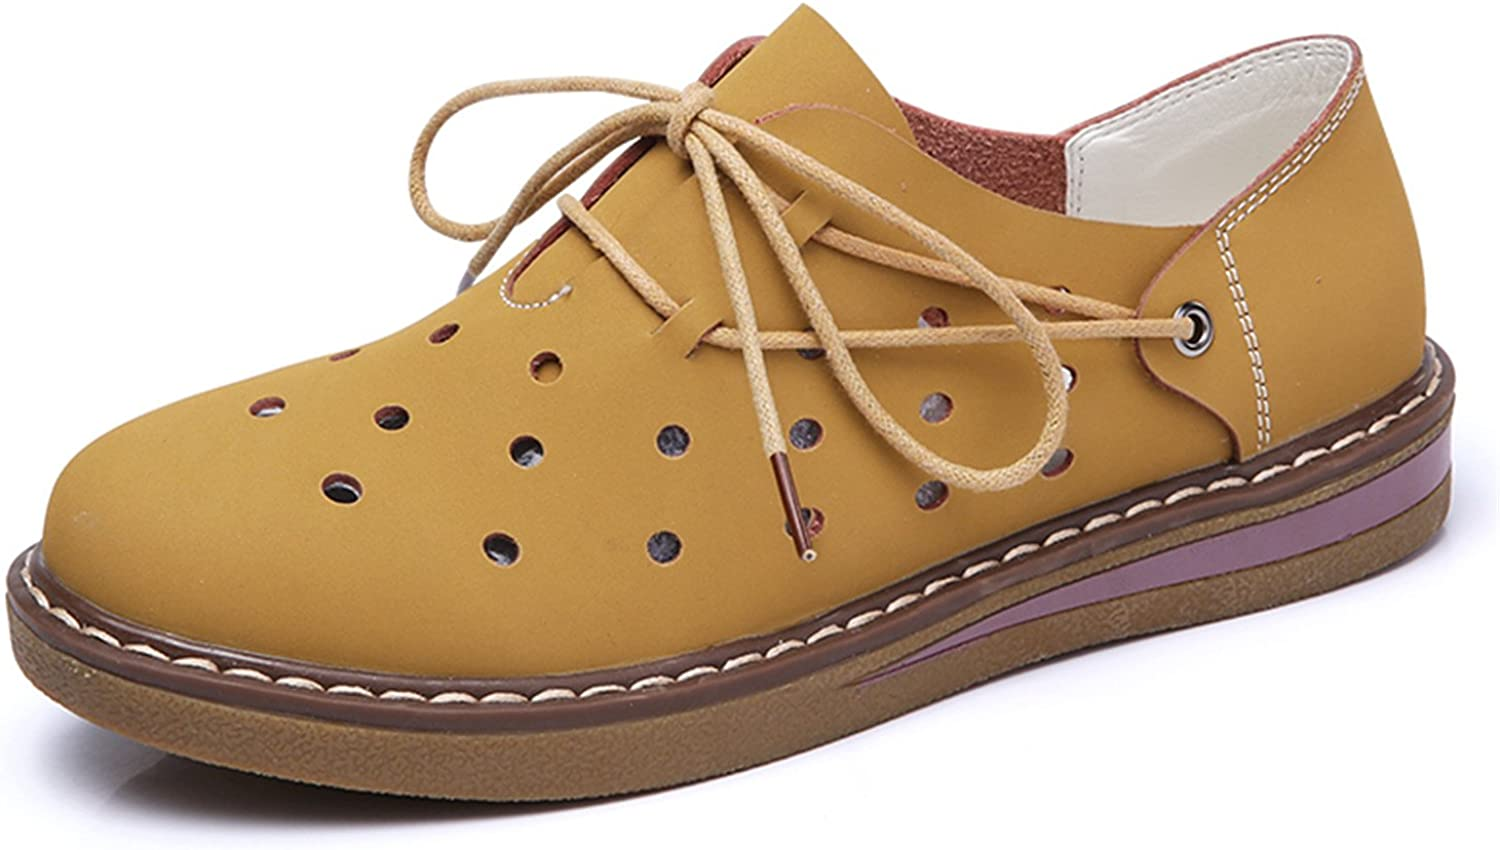 Mandaartins Women Flats shoes Cutout Lace up Loafers Oxford shoes Moccasins Boat shoes